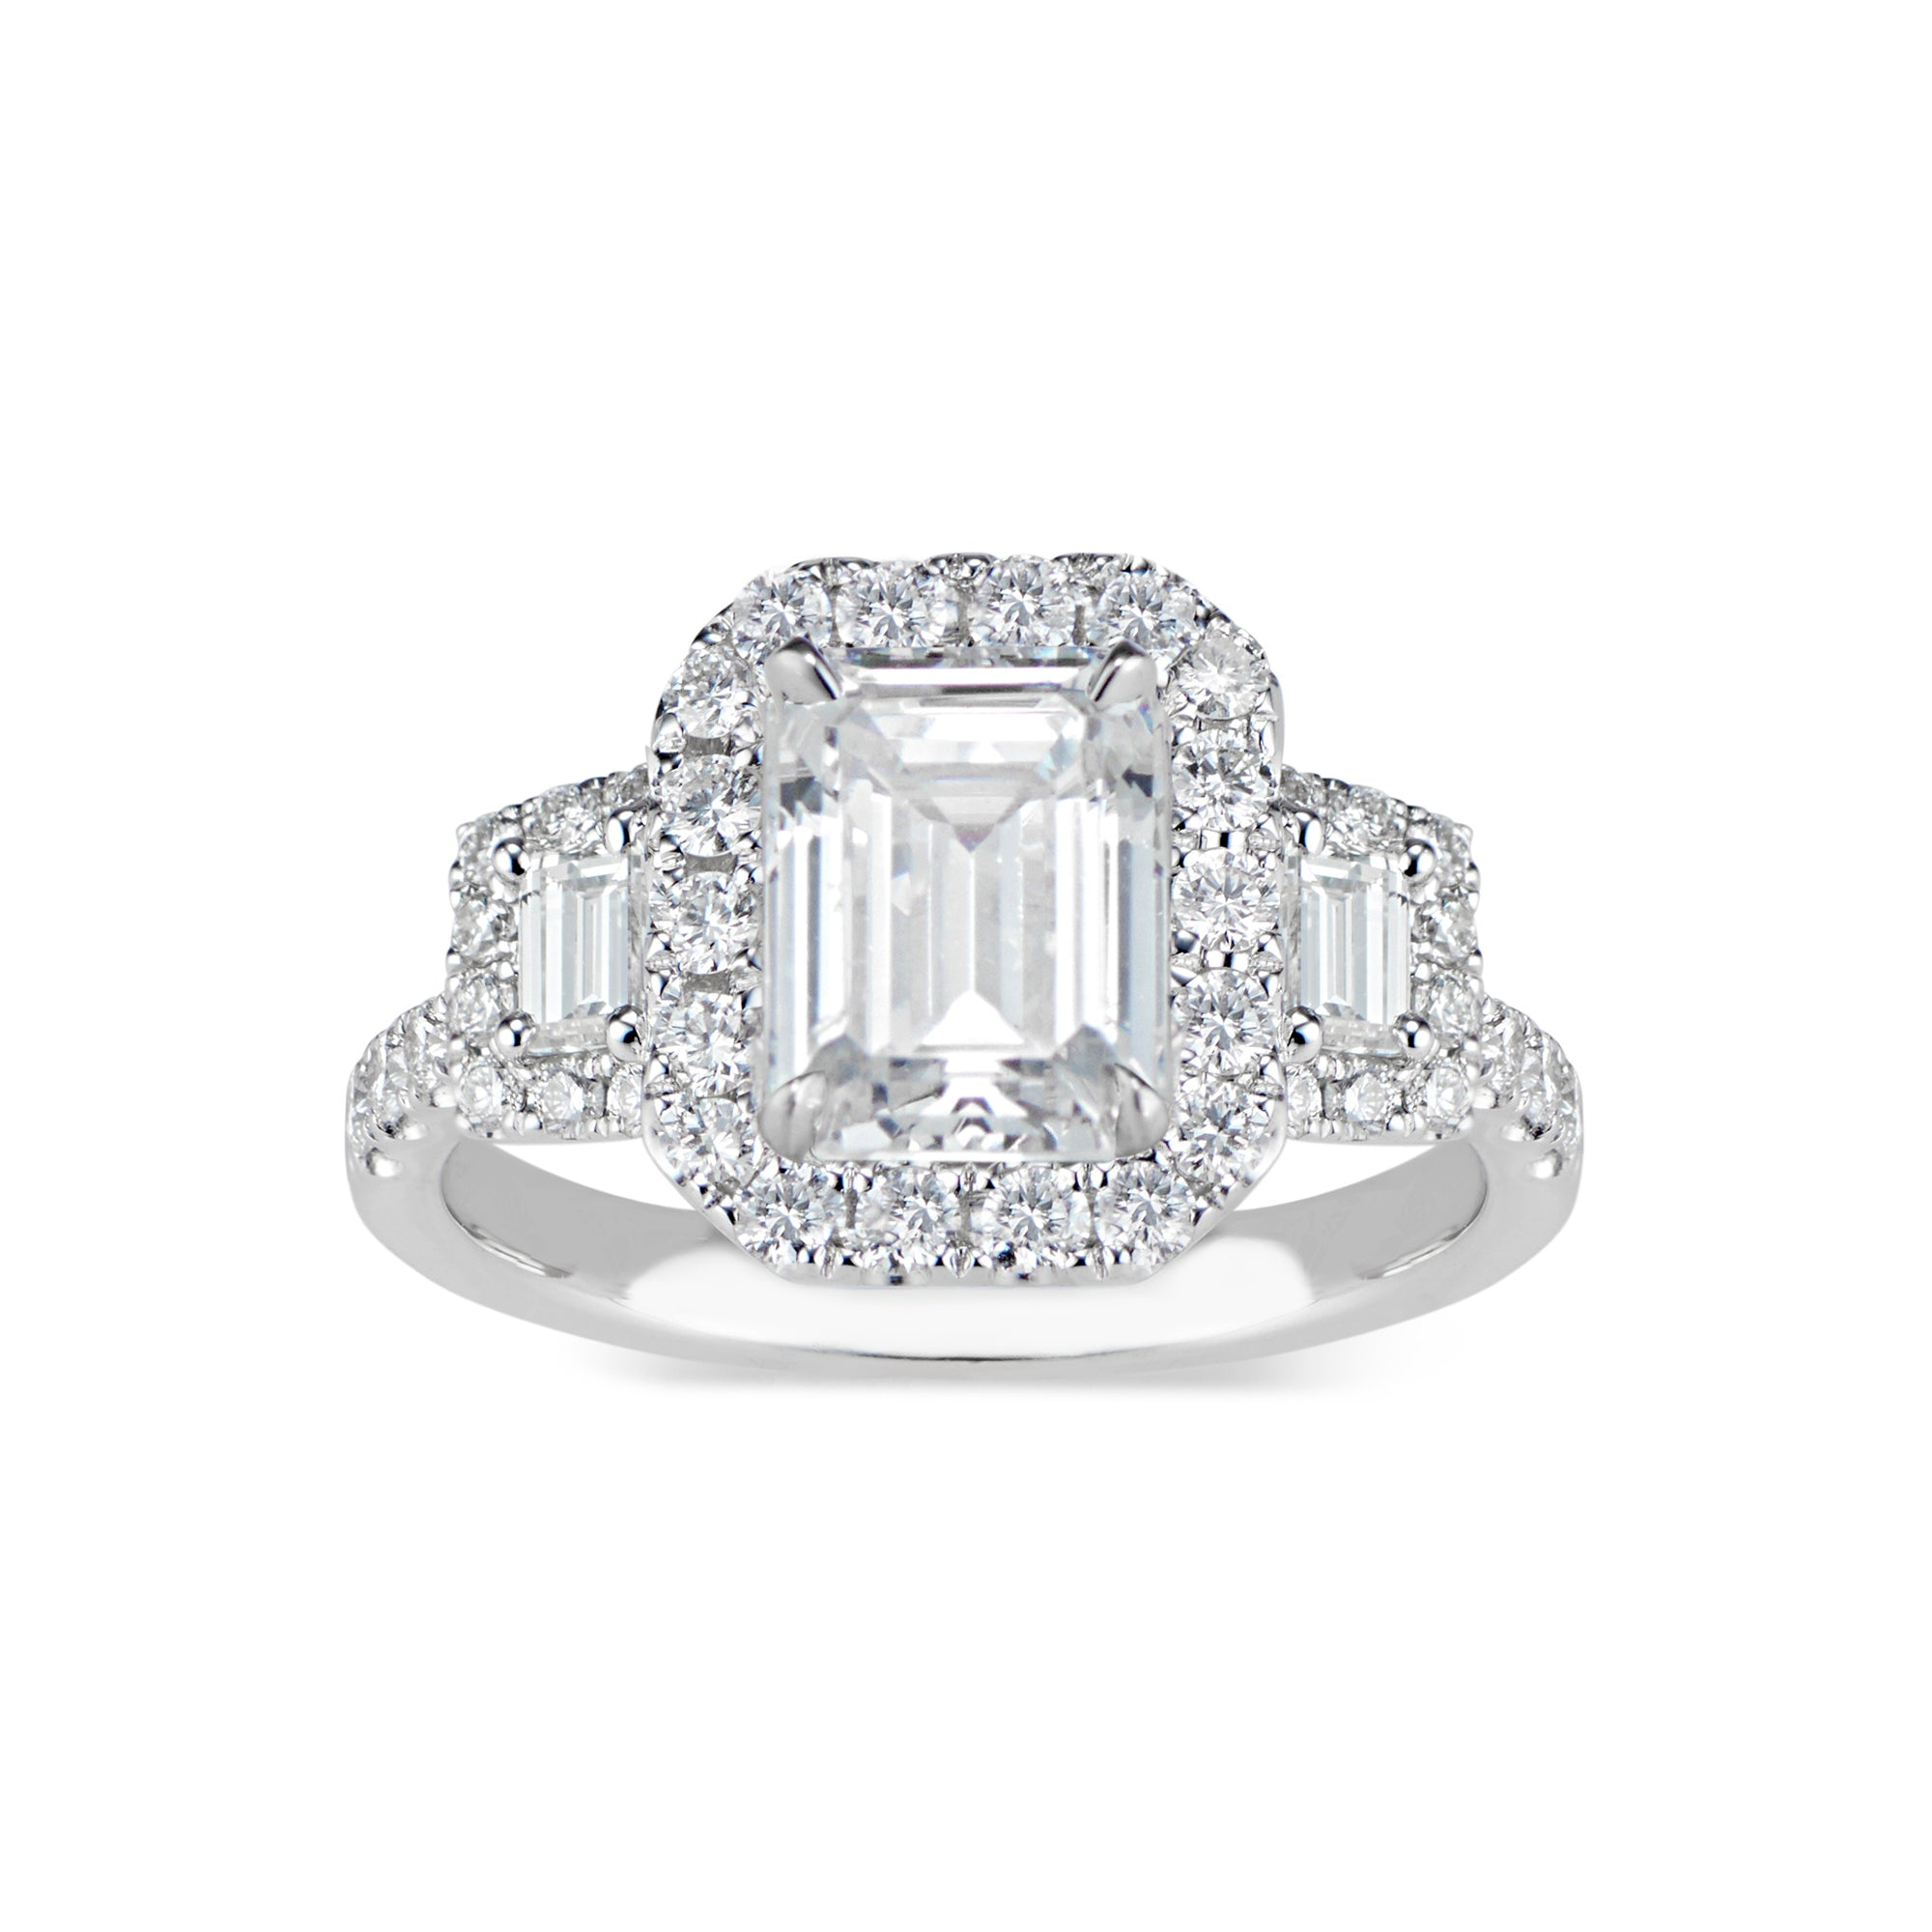 Three-Stone Emerald-Cut Diamond Engagement Ring